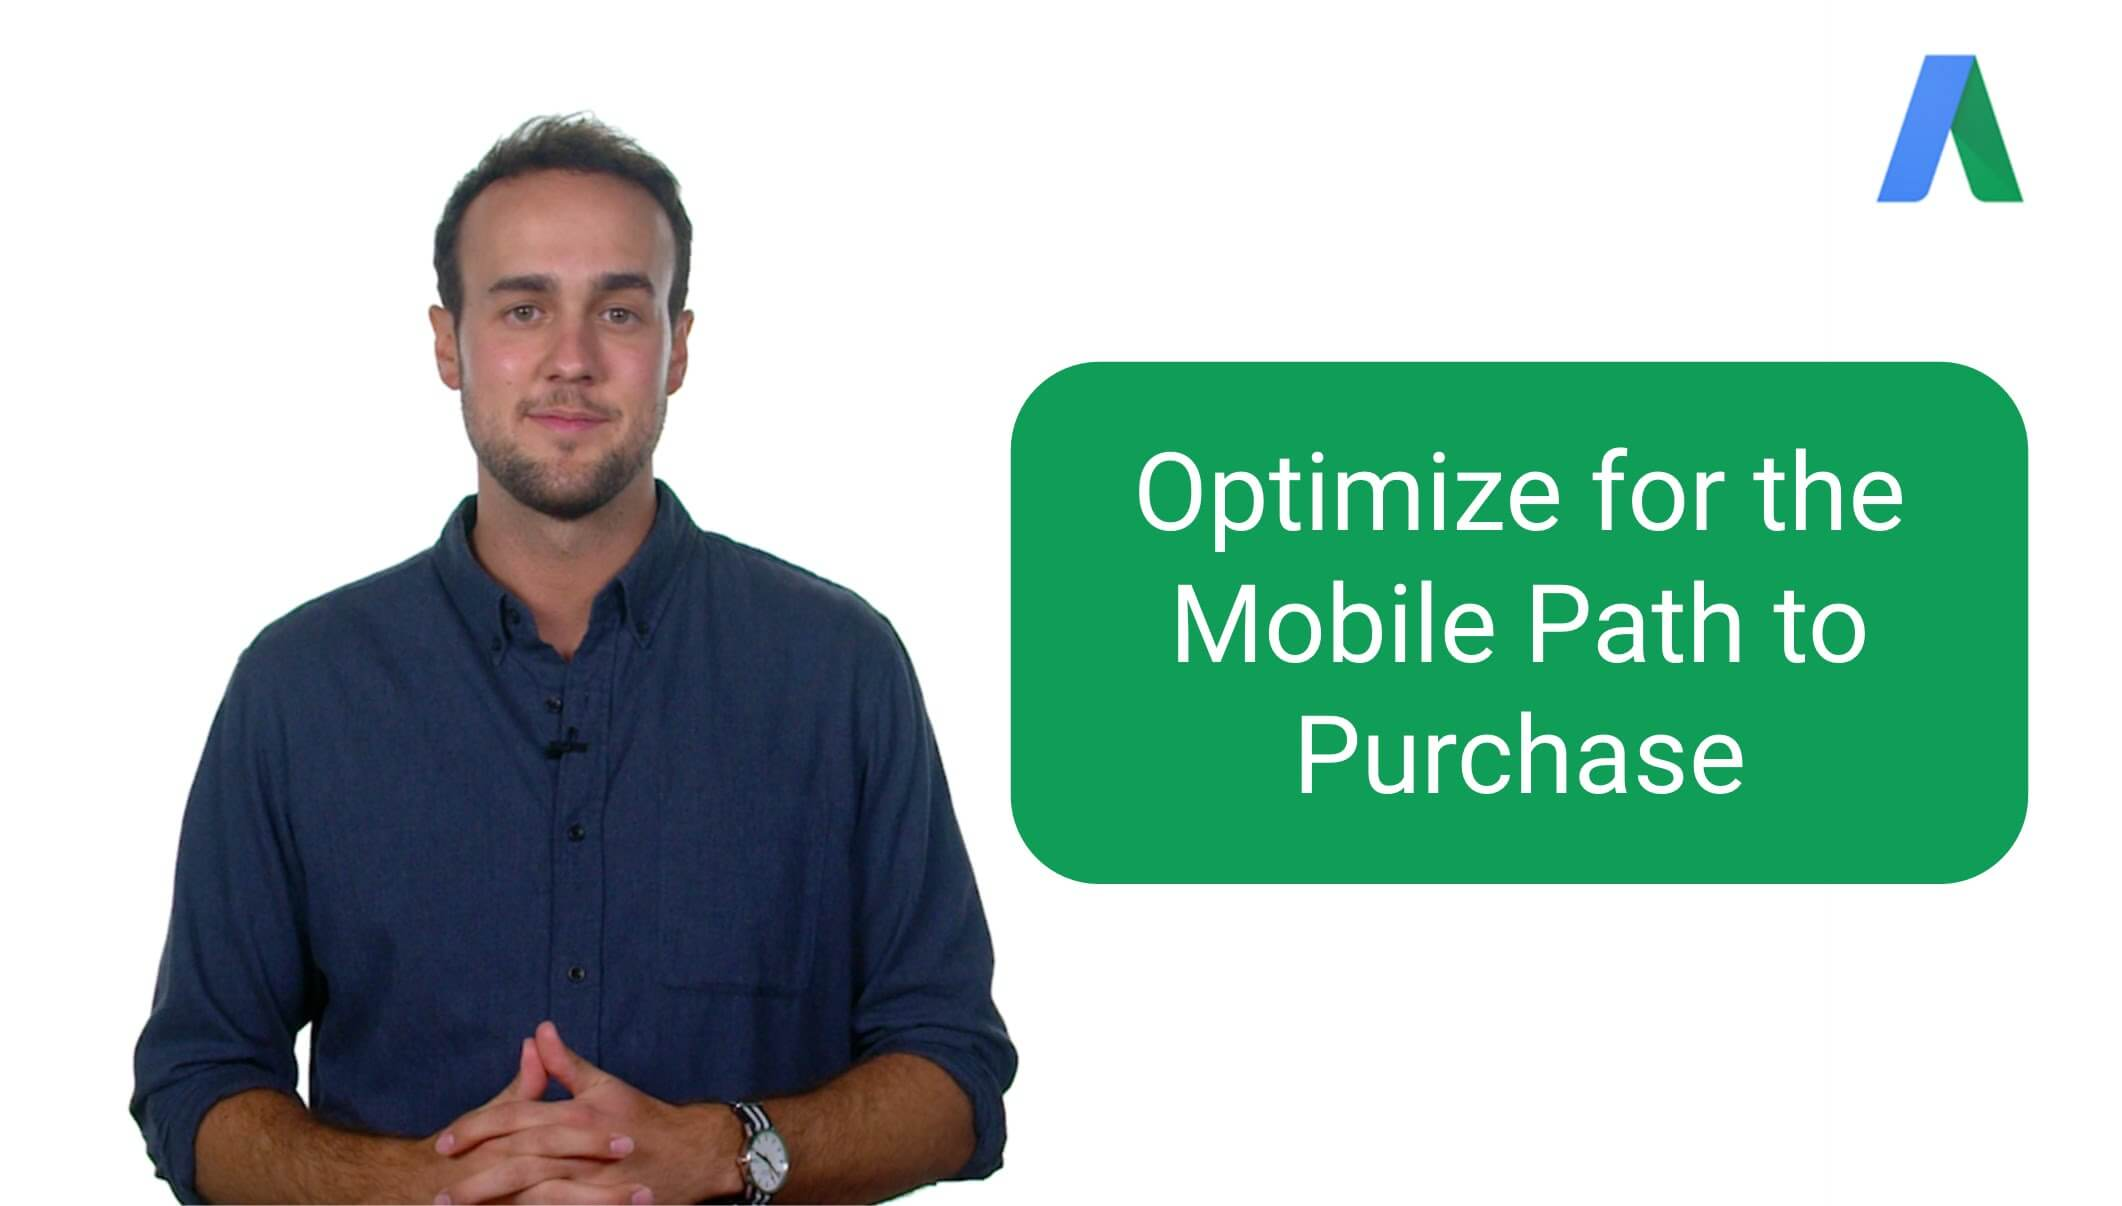 Optimize for the Mobile Path to Purchase